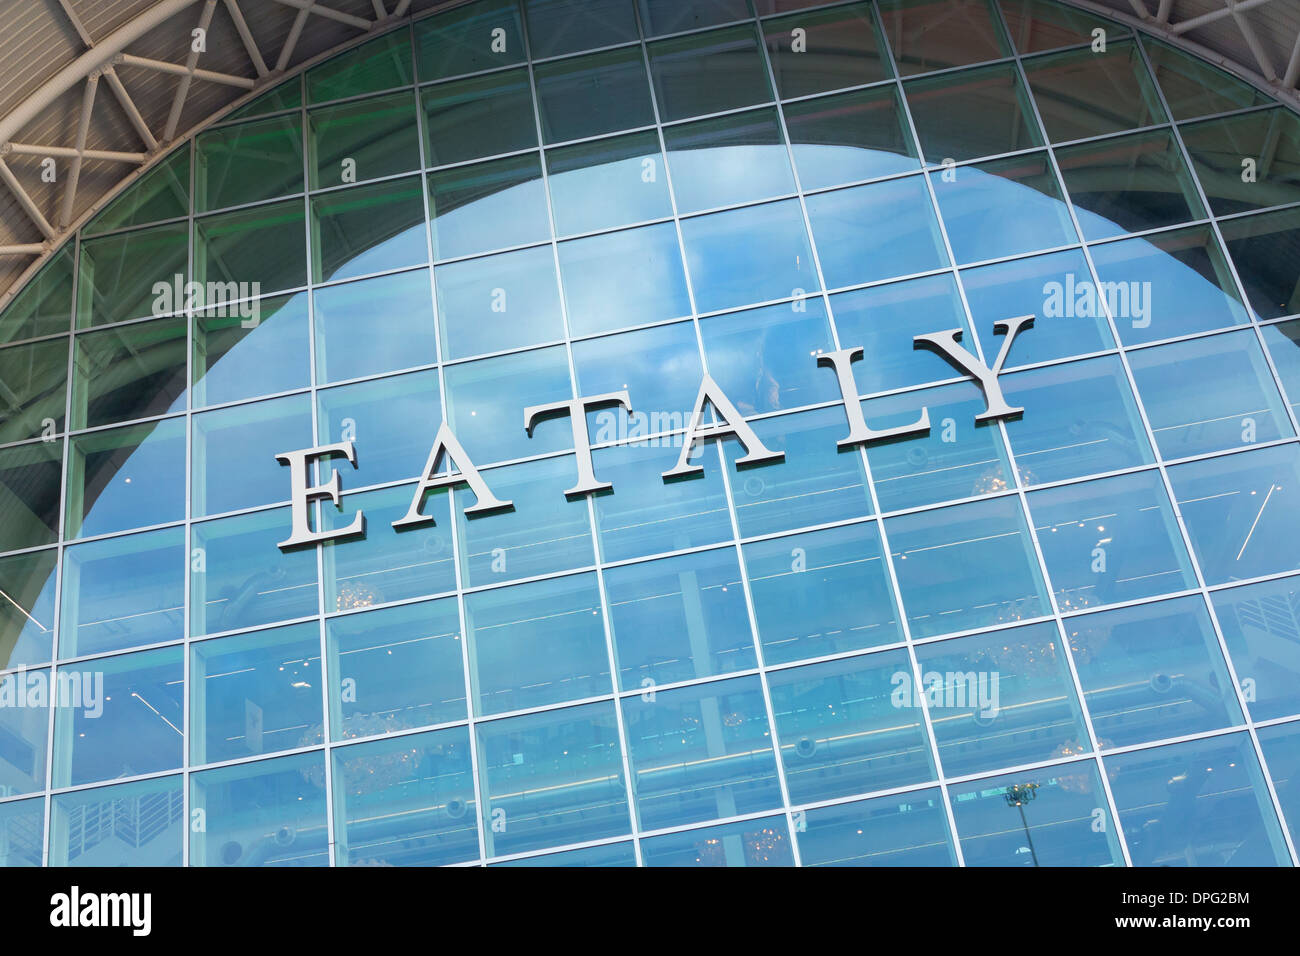 Exterior sign of the Eataly store in Rome, Italy - Stock Image